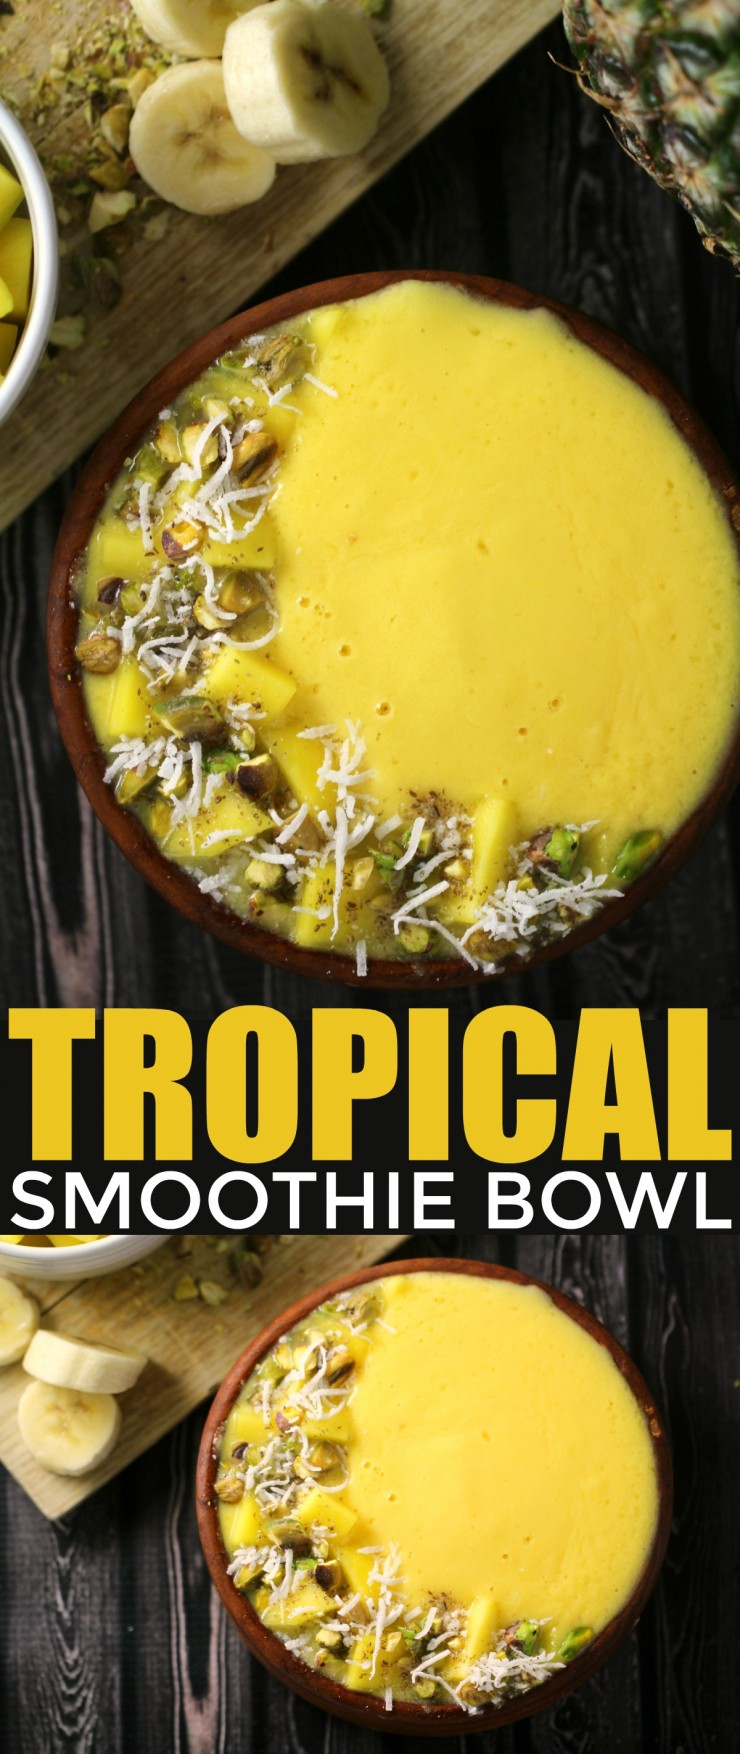 This Tropical Smoothie Bowl is a great choice for breakfast with the mellow sweetness of bananas and mango combined with the tang of pineapple for an irresistibly fresh bowl.